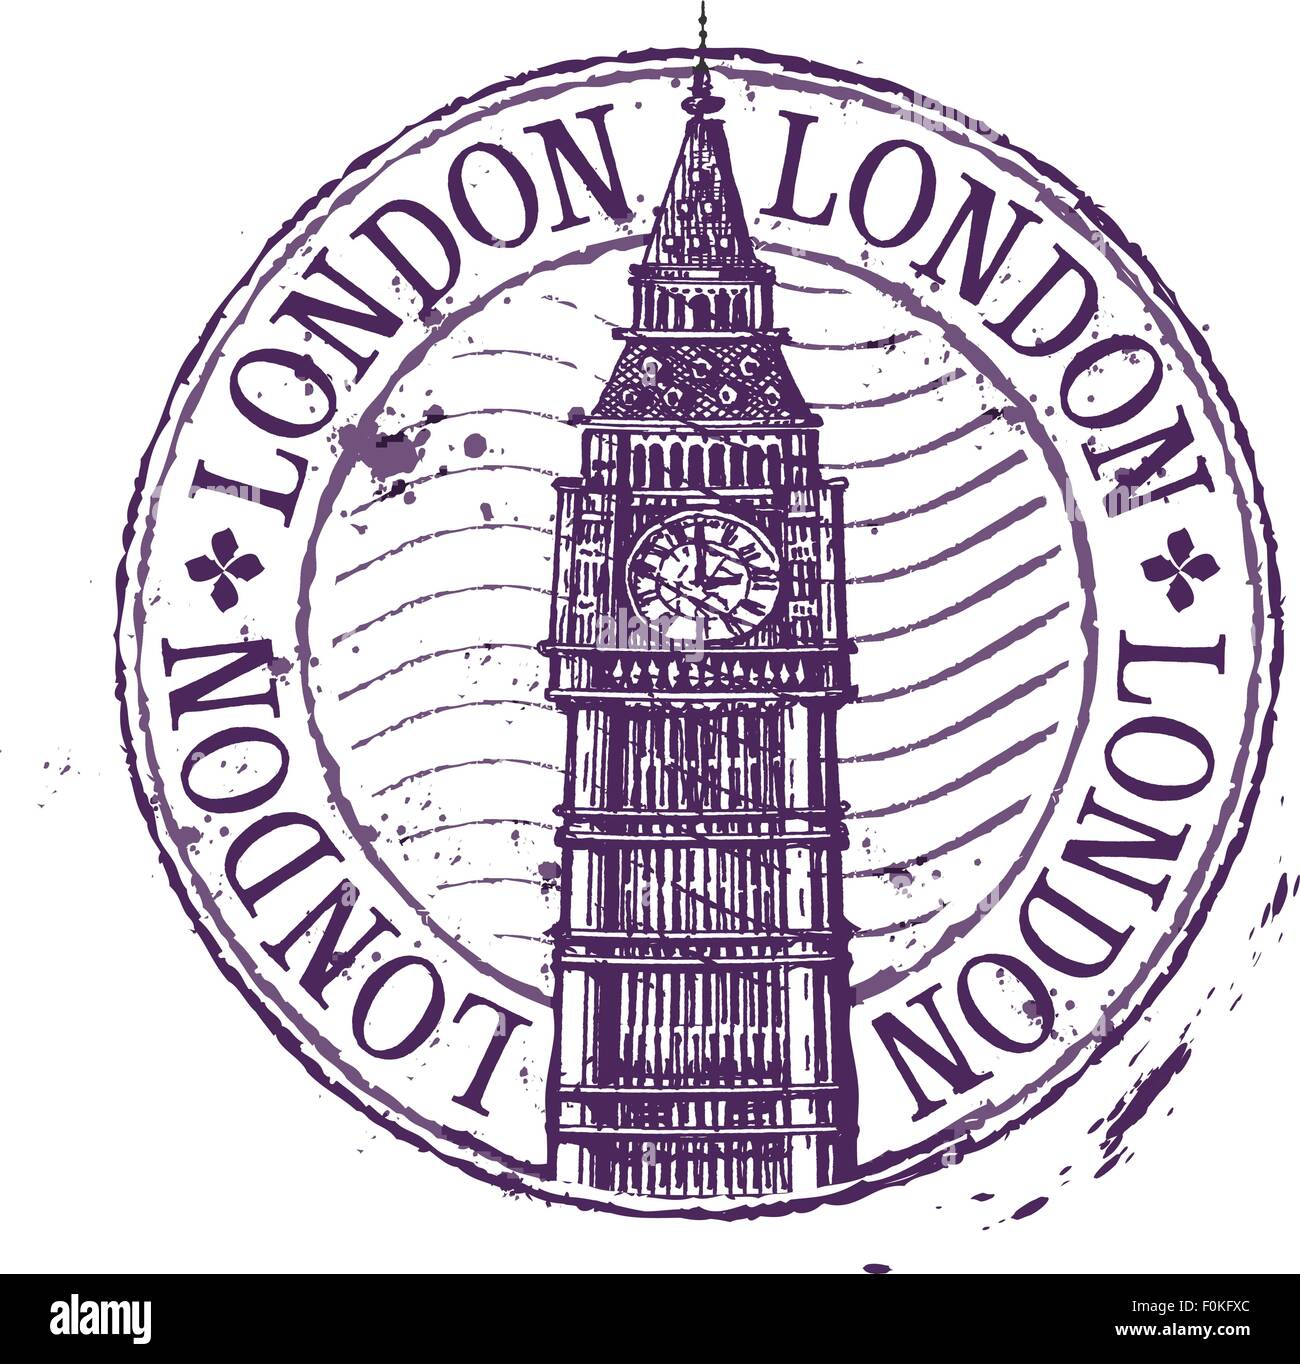 Stock Photo London Vector Logo Design Template Shabby Stamp Or England Britain 86481428 on My Country Study